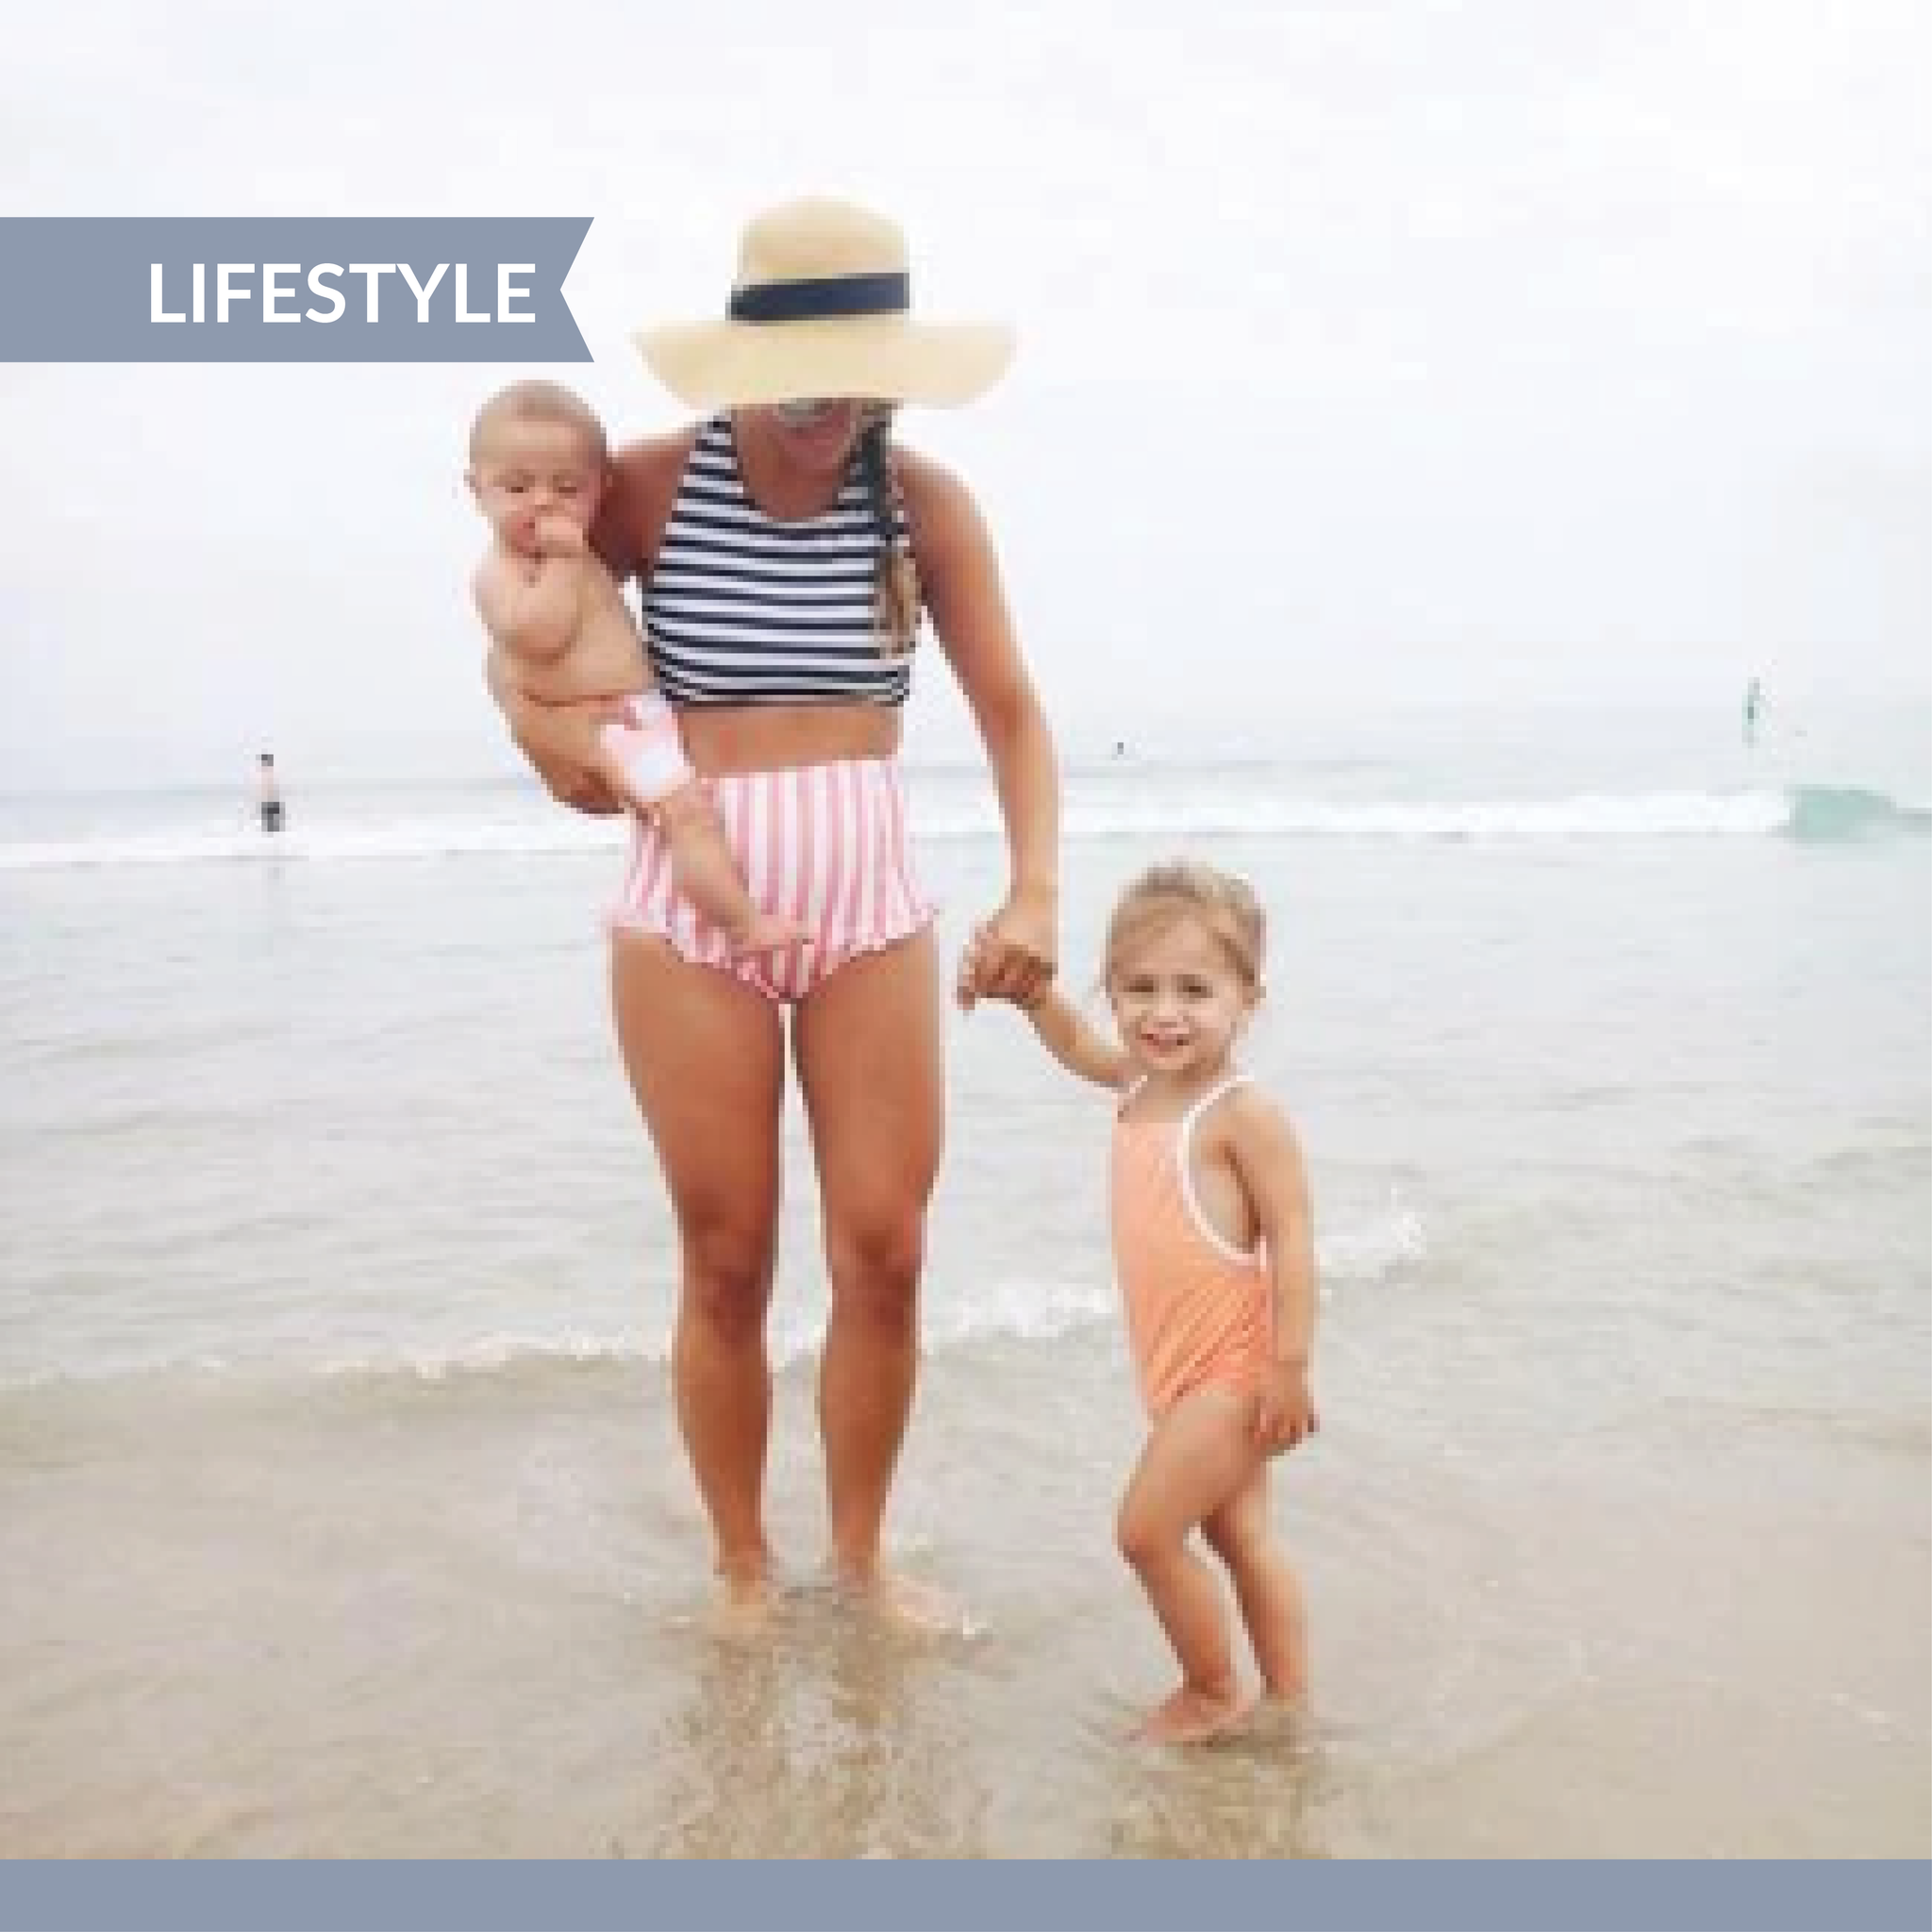 5 tips for surviving baby's 1st beach trip